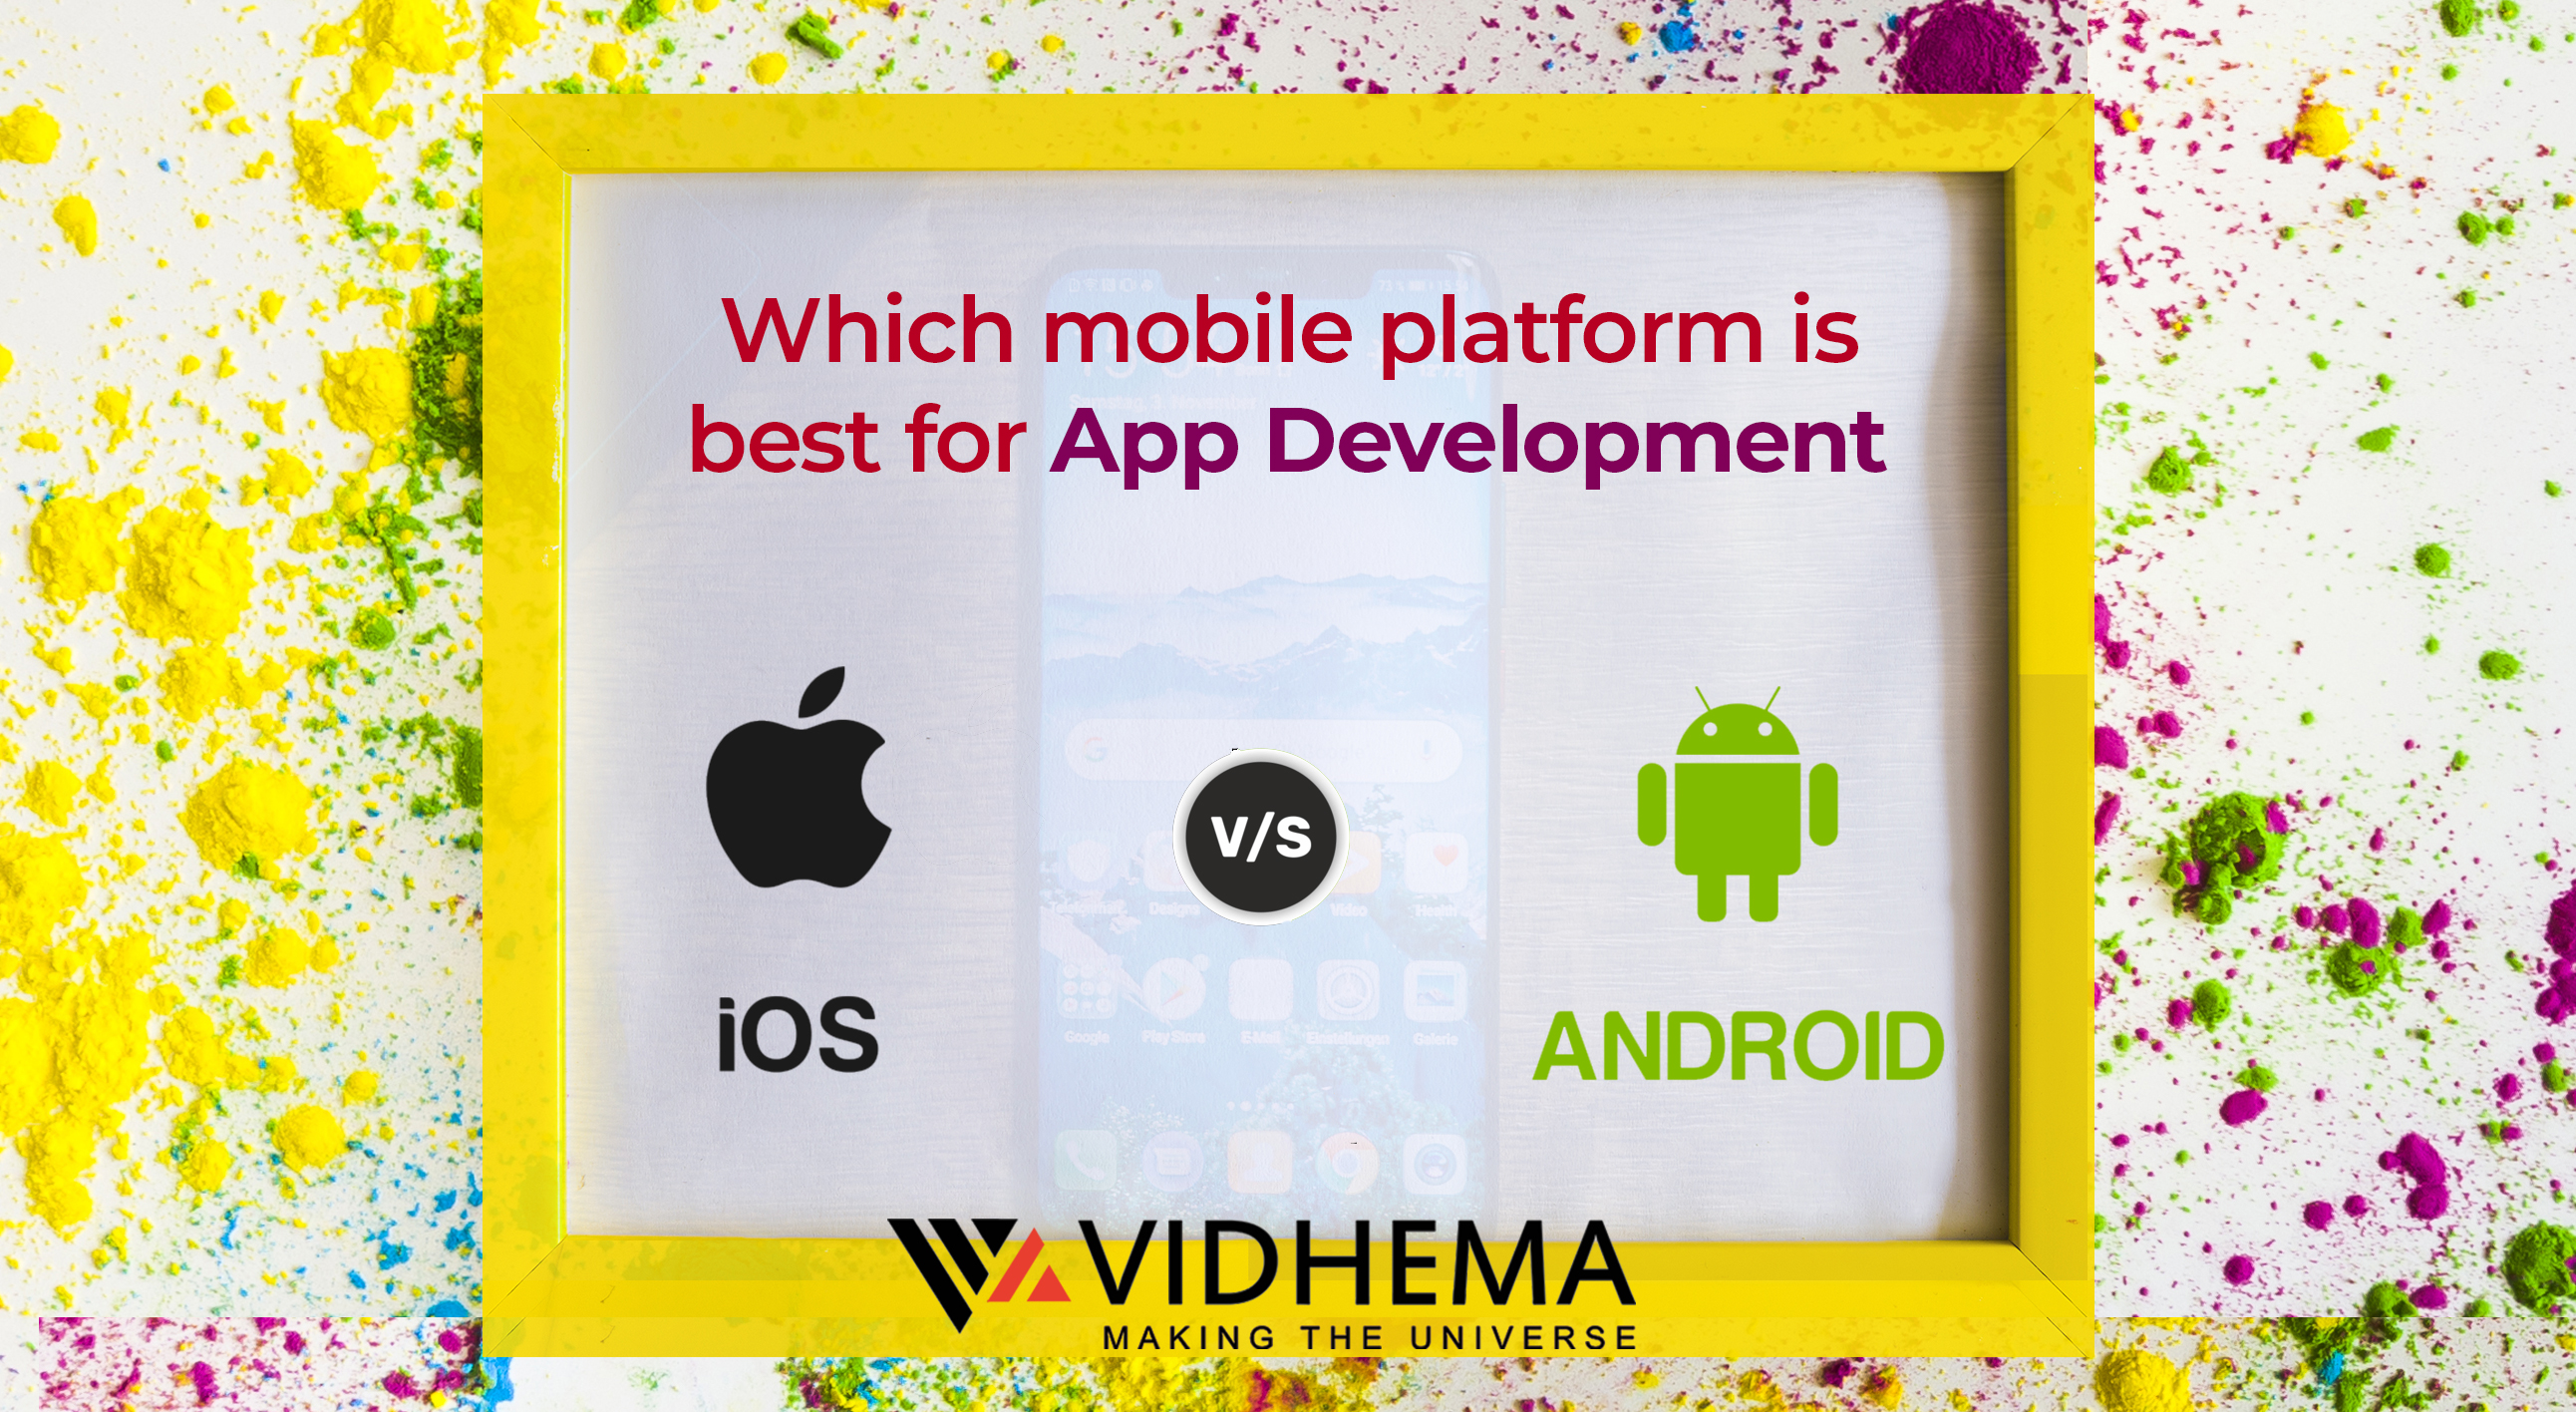 Android vs iOS: Which mobile platform is best for app development?